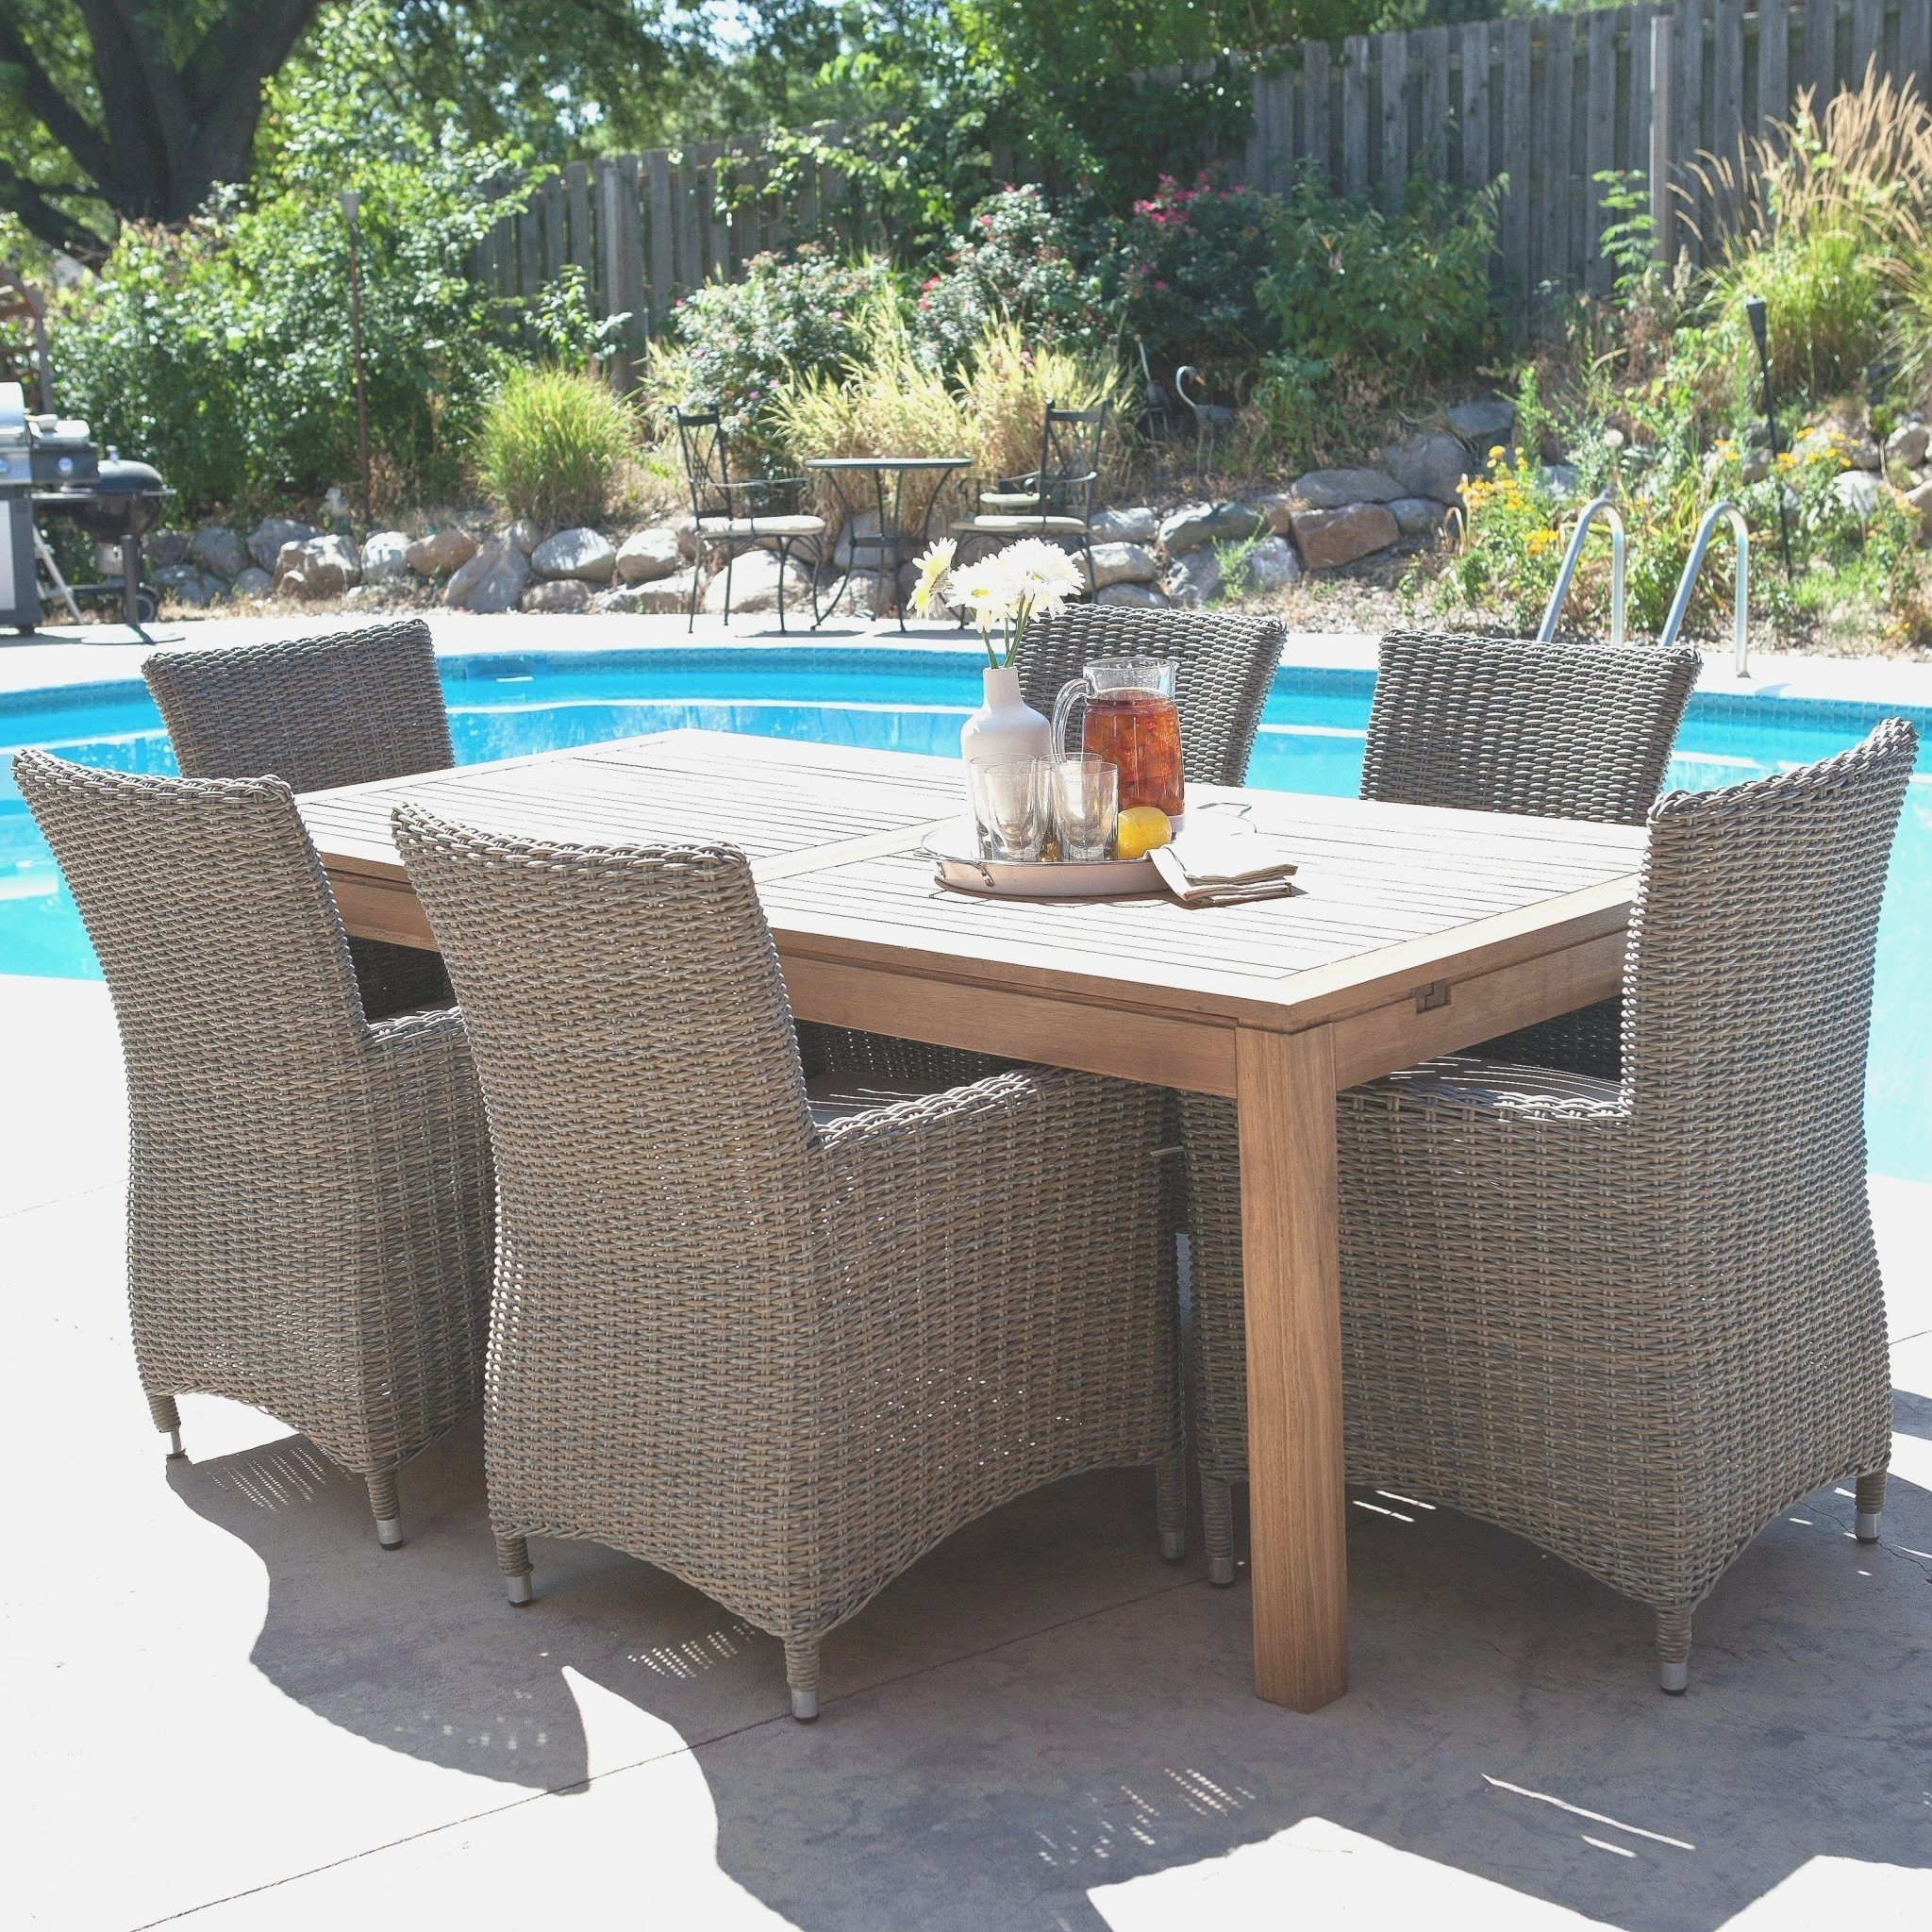 Clearance Patio Furniture Sets Costco With Images Clearance